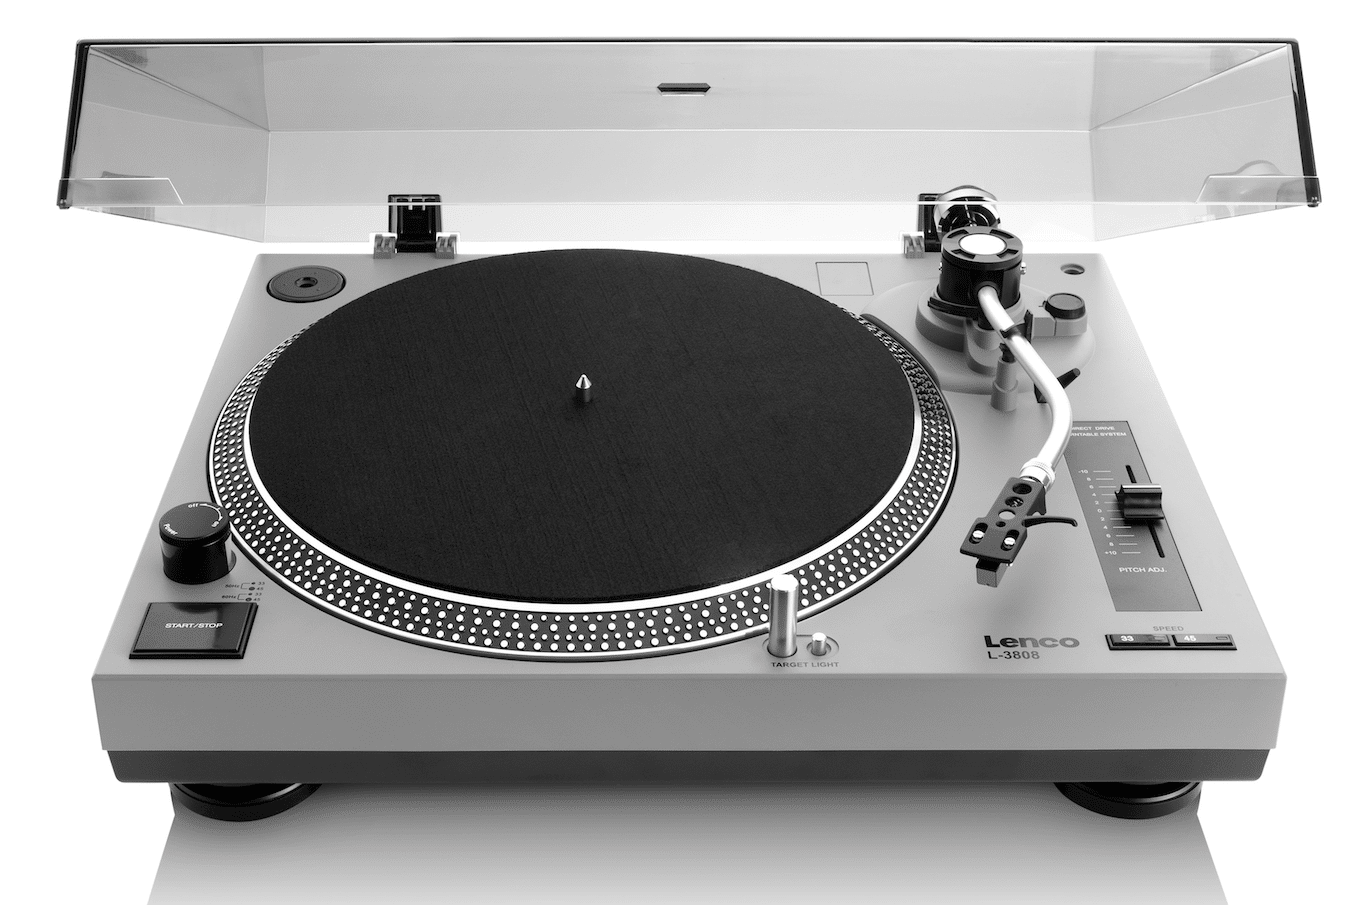 Lenco L 3808 Turntable: Direct Drive on a Budget The